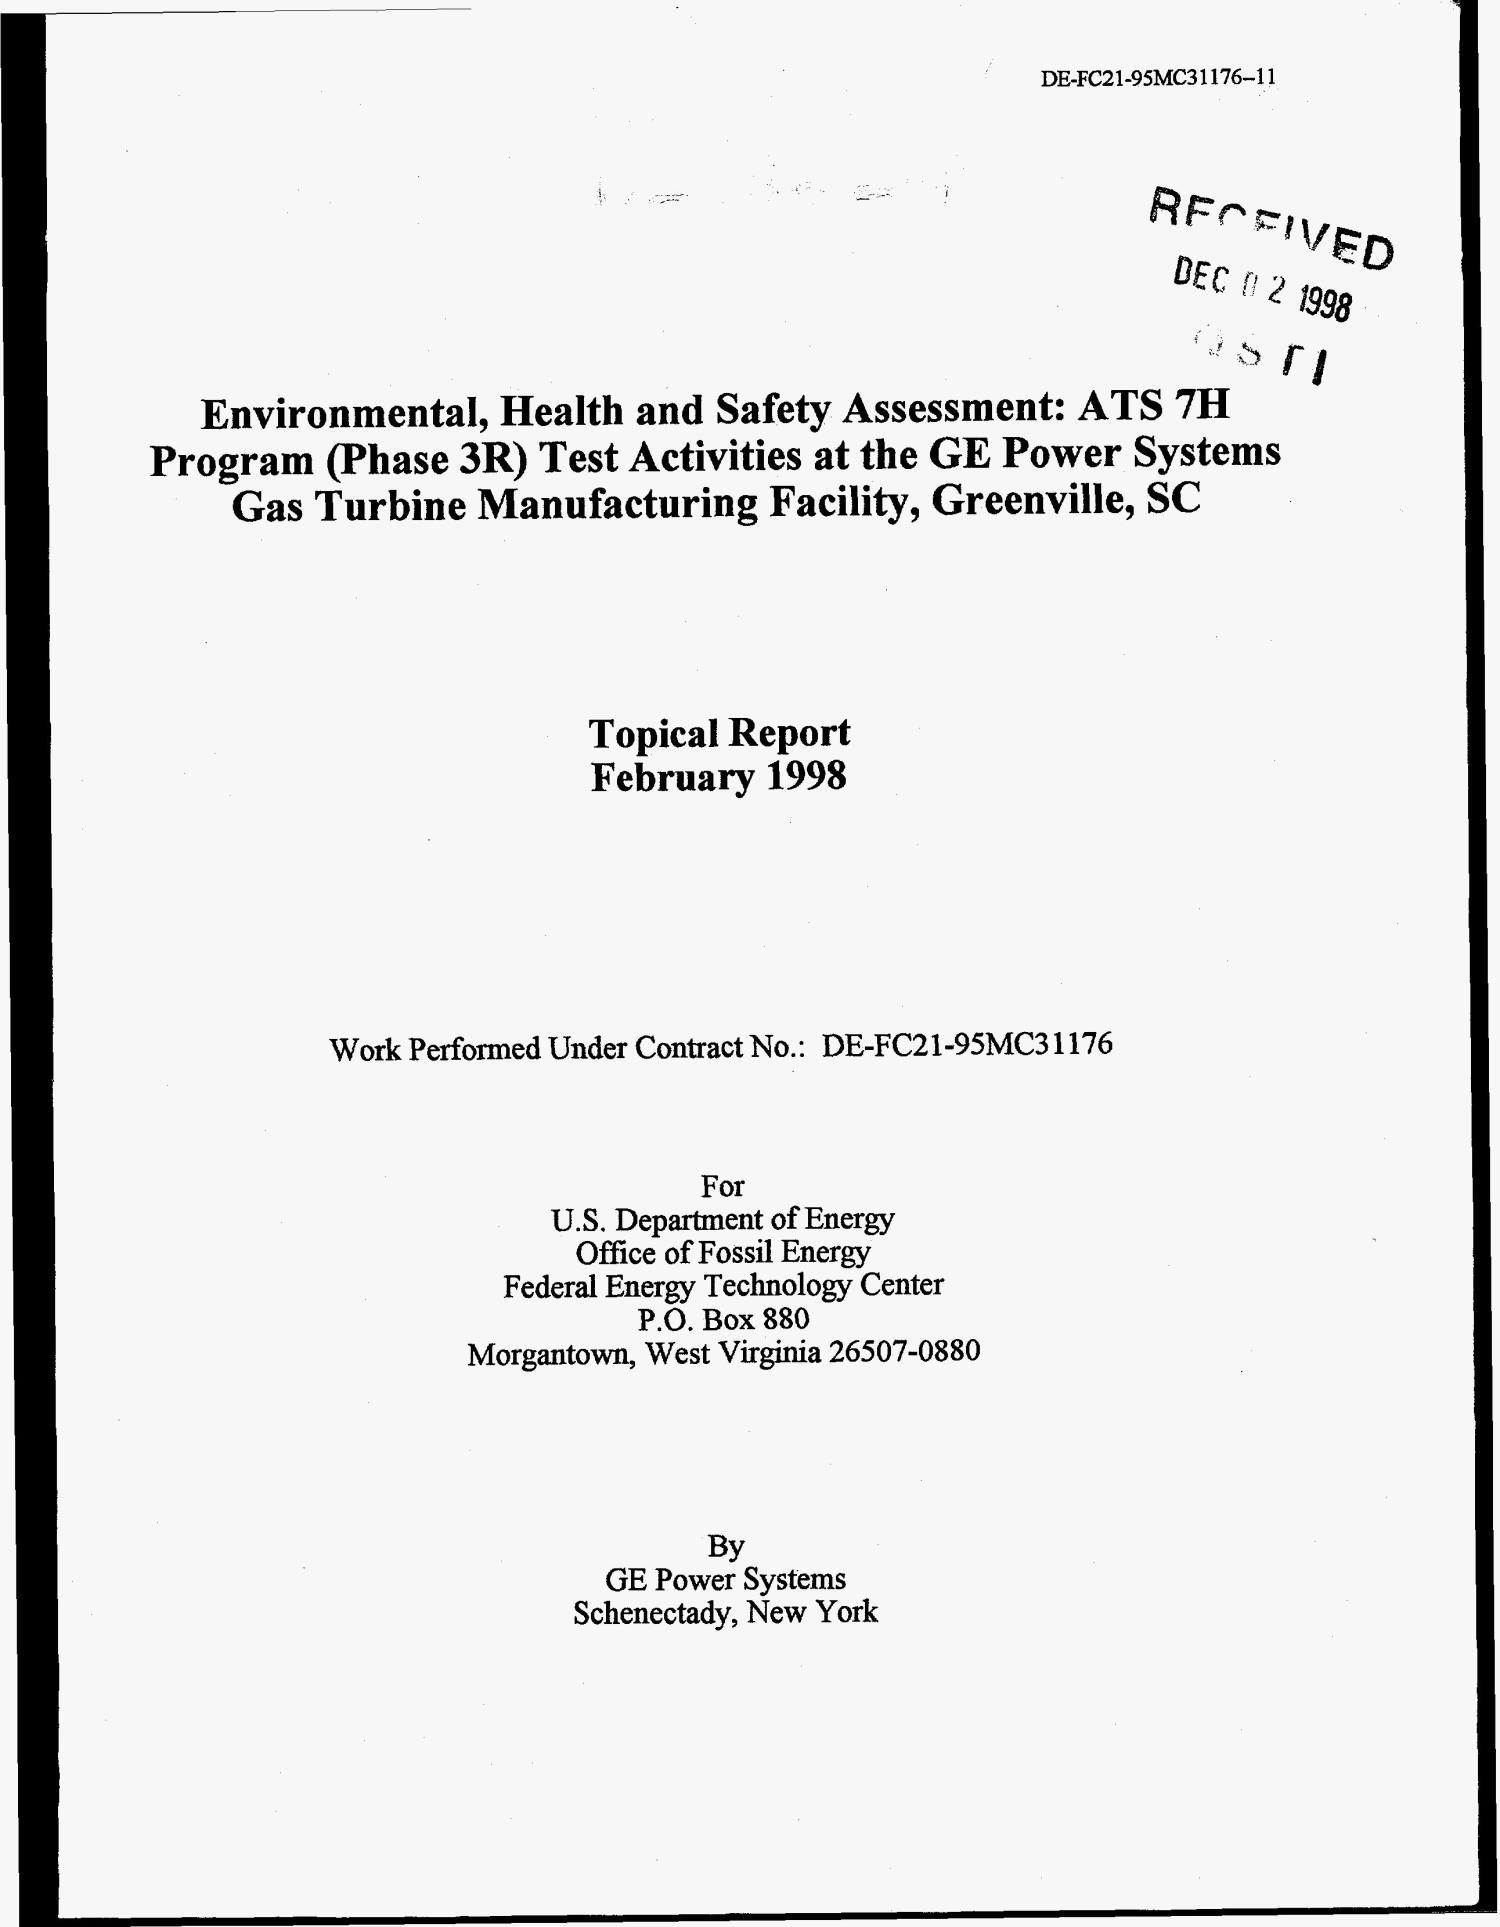 Environmental Health and Safety Assessment ATS 7H Program Phase